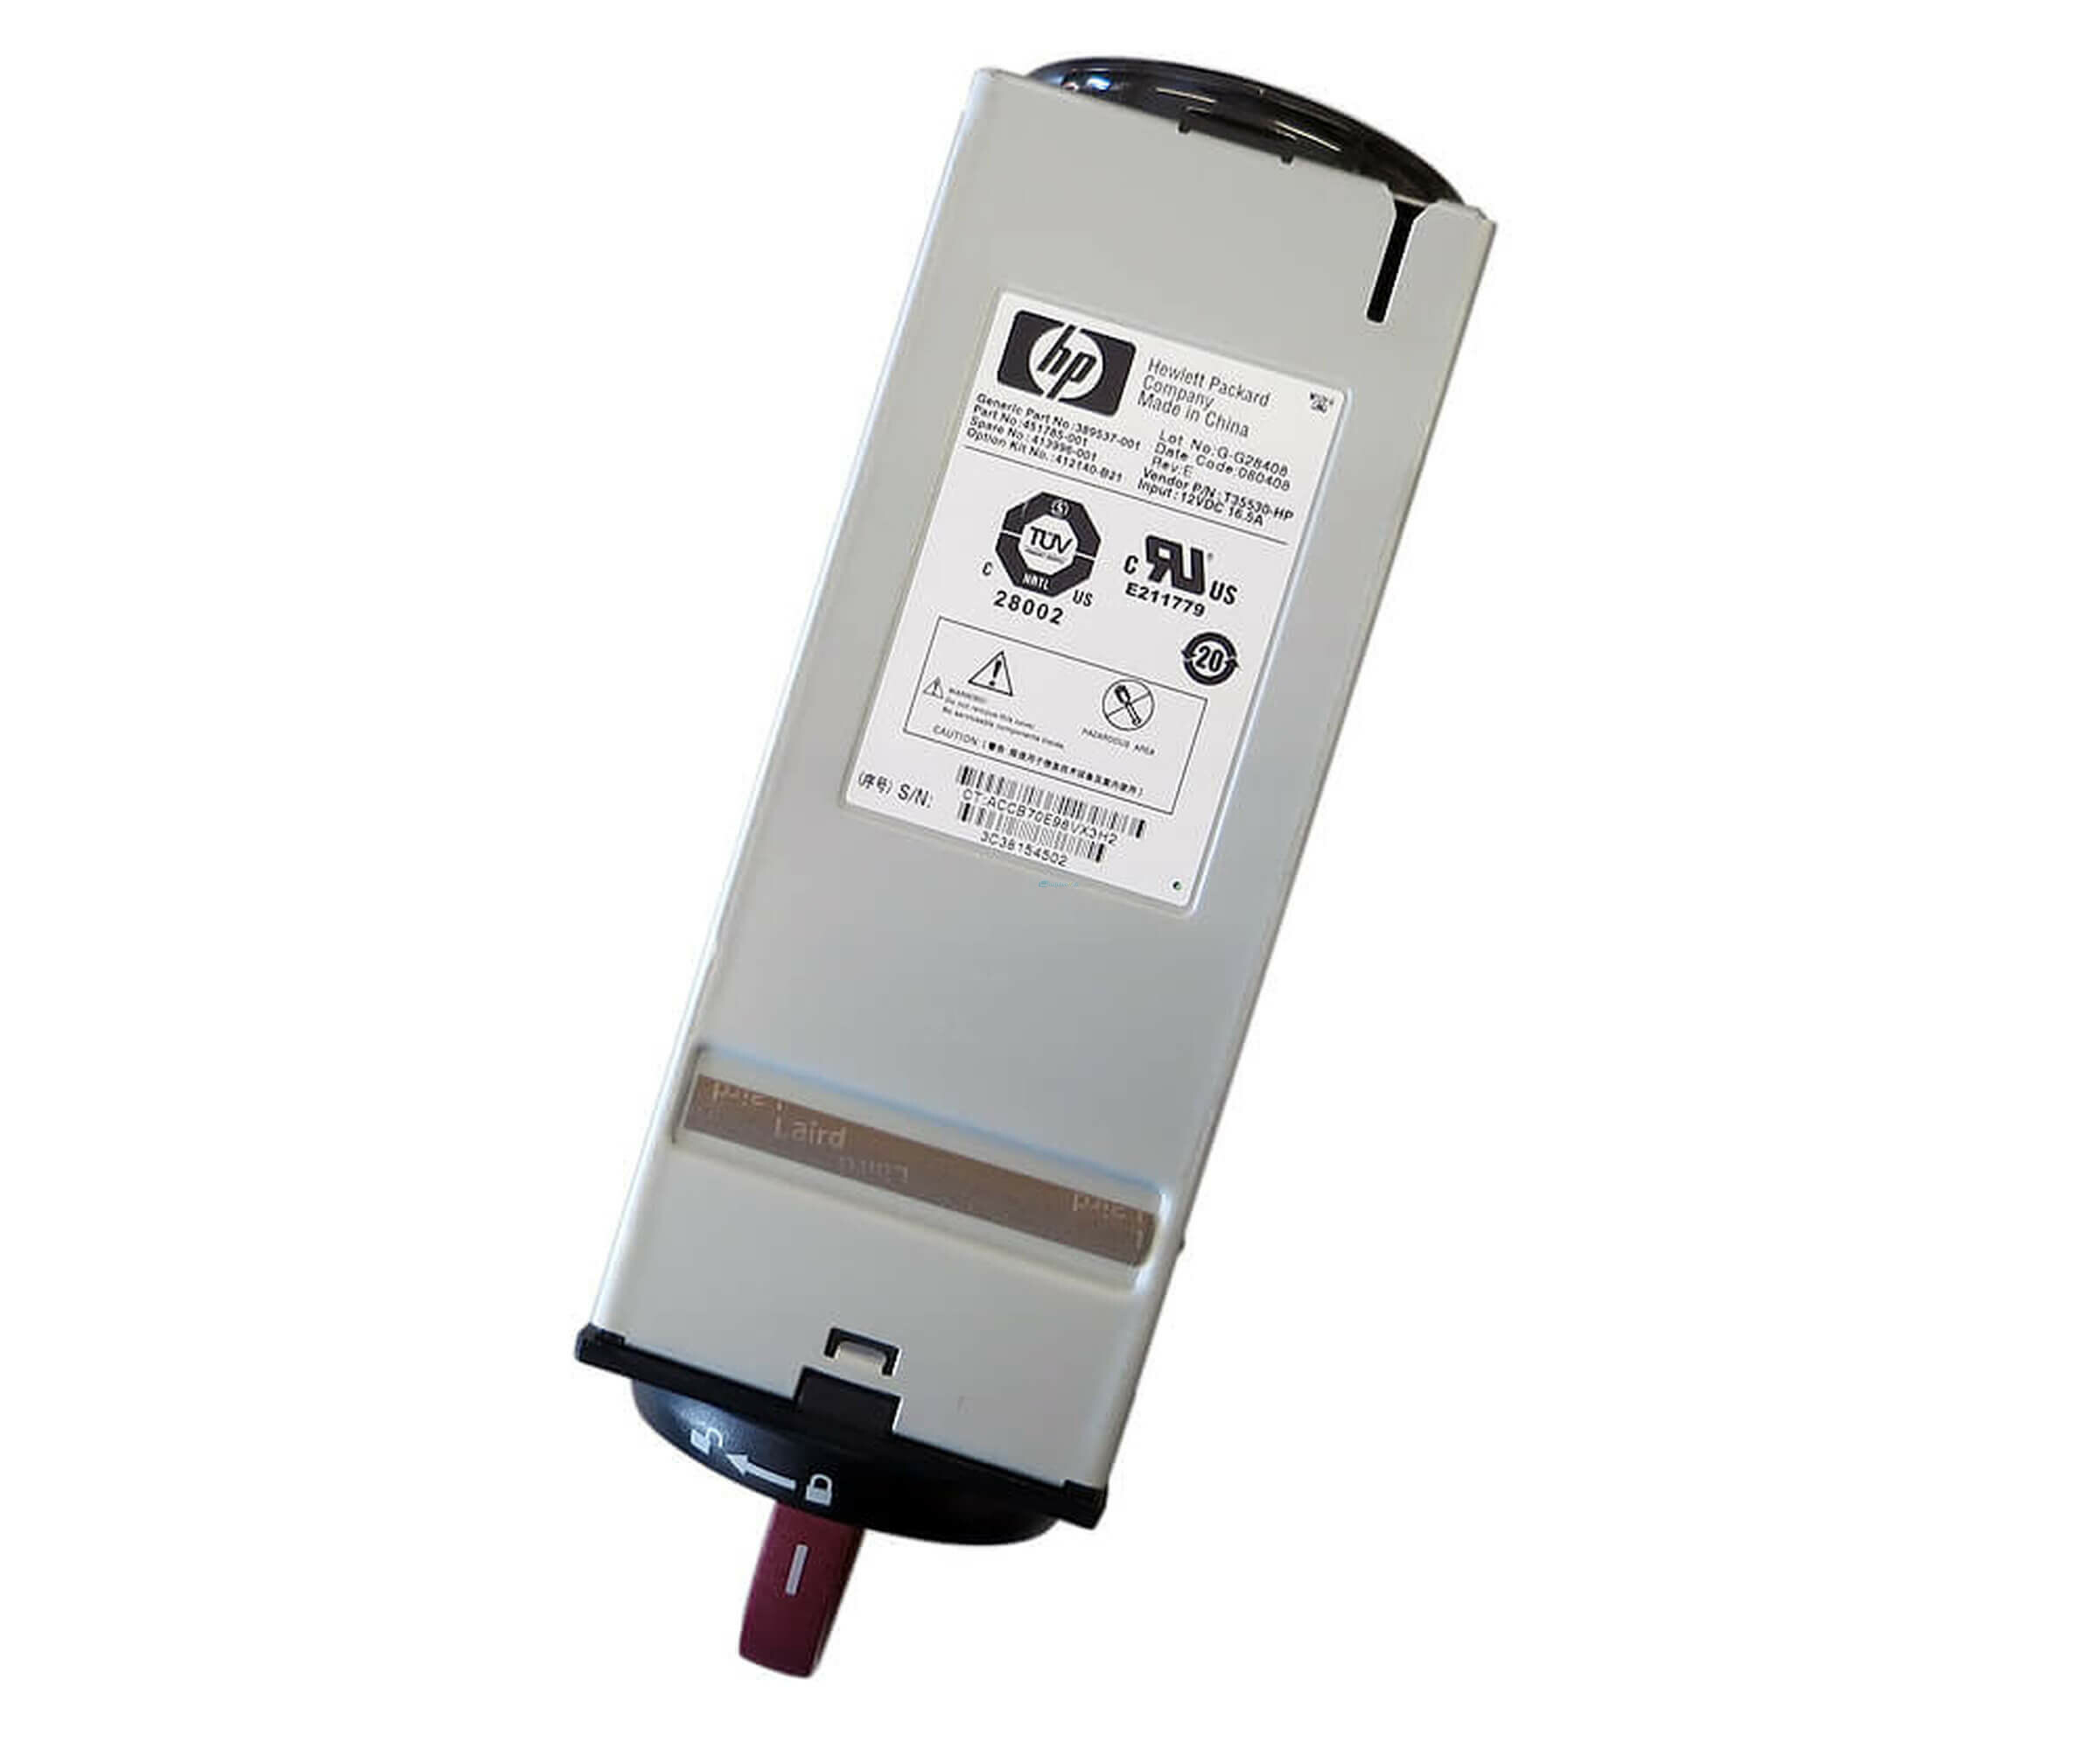 HP 412140-B21 - Single Active Cool Lüfter - für HP BLc 3000 - 451785-001 - 413996-001